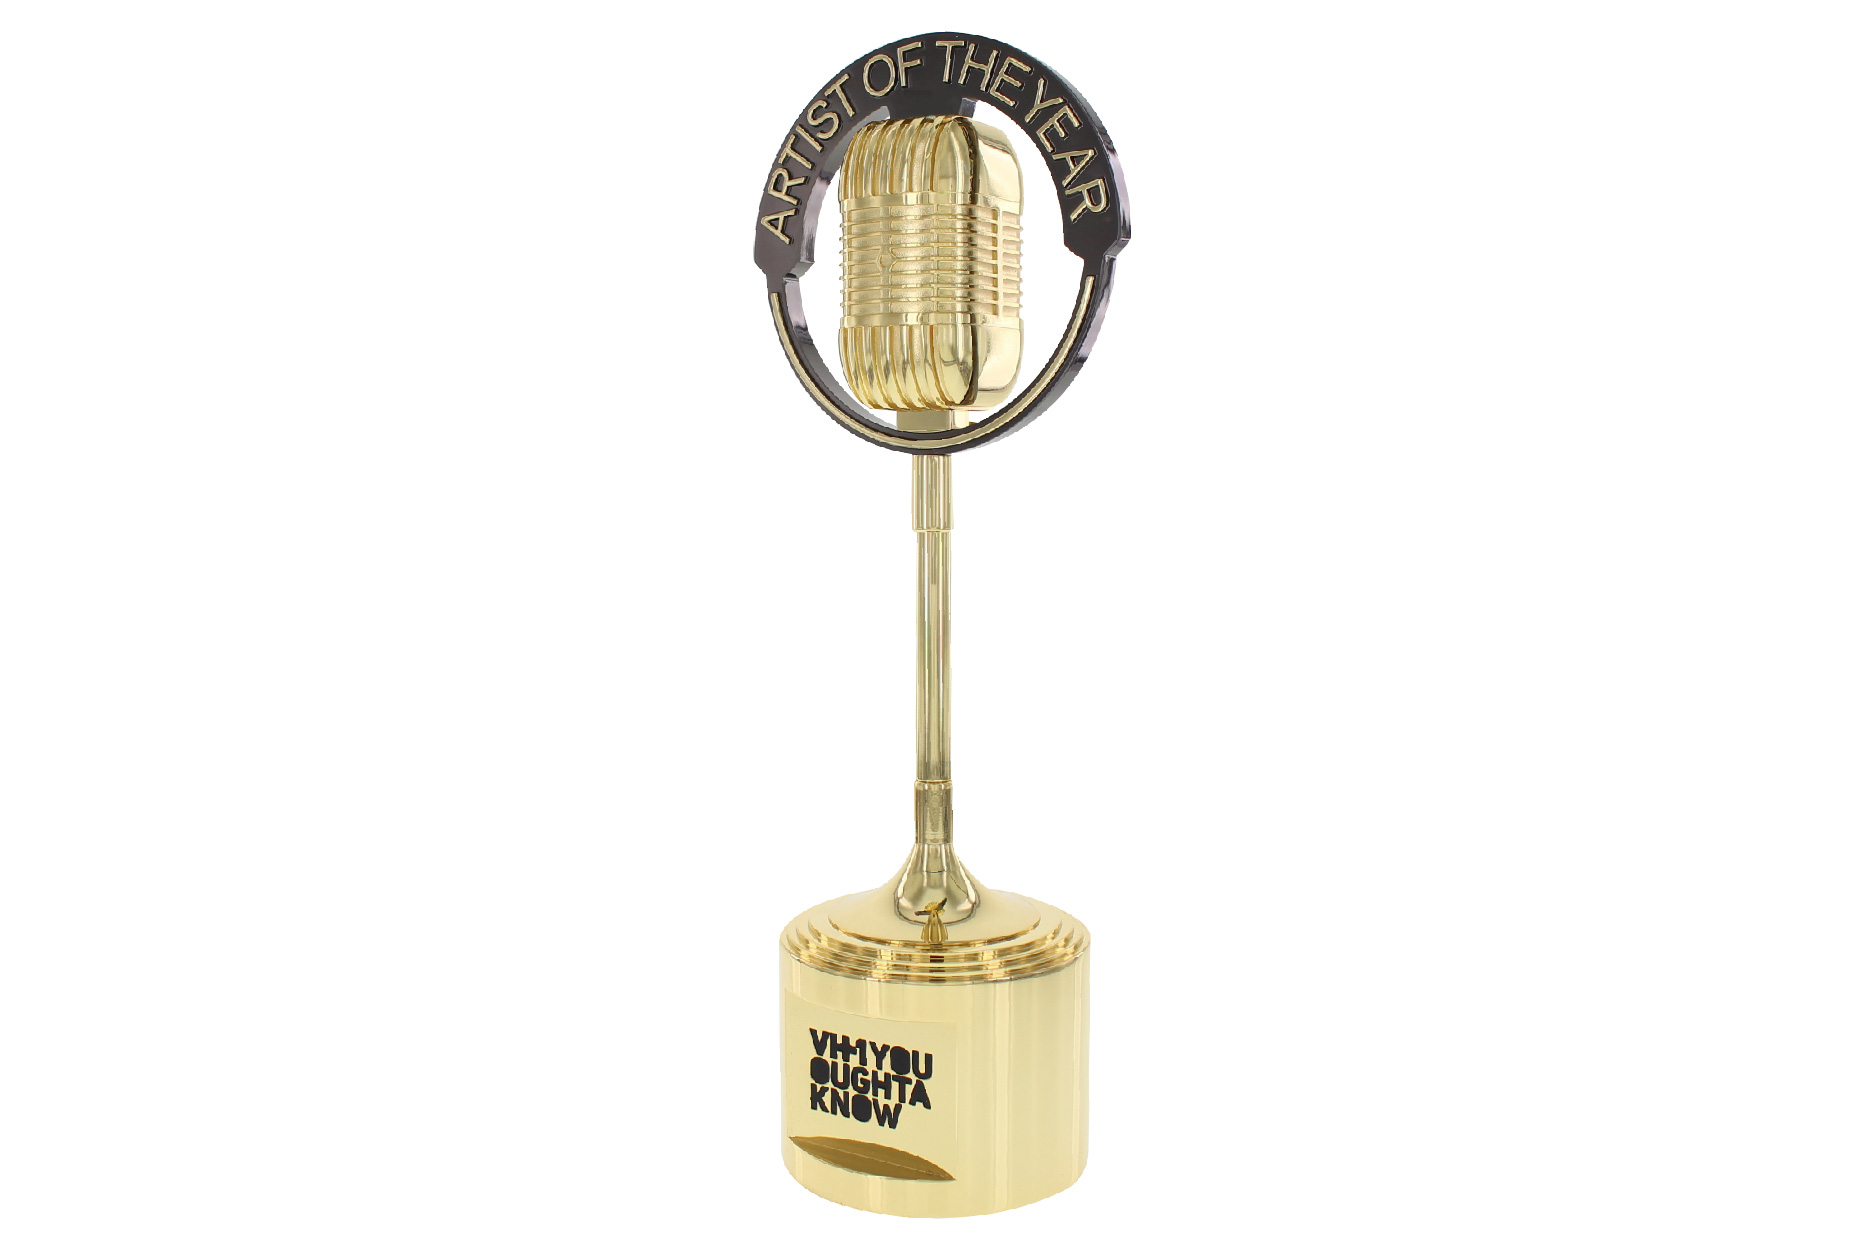 Gold Metal Microphone Trophy Presented To Artist Of The Year At Music Awards Show